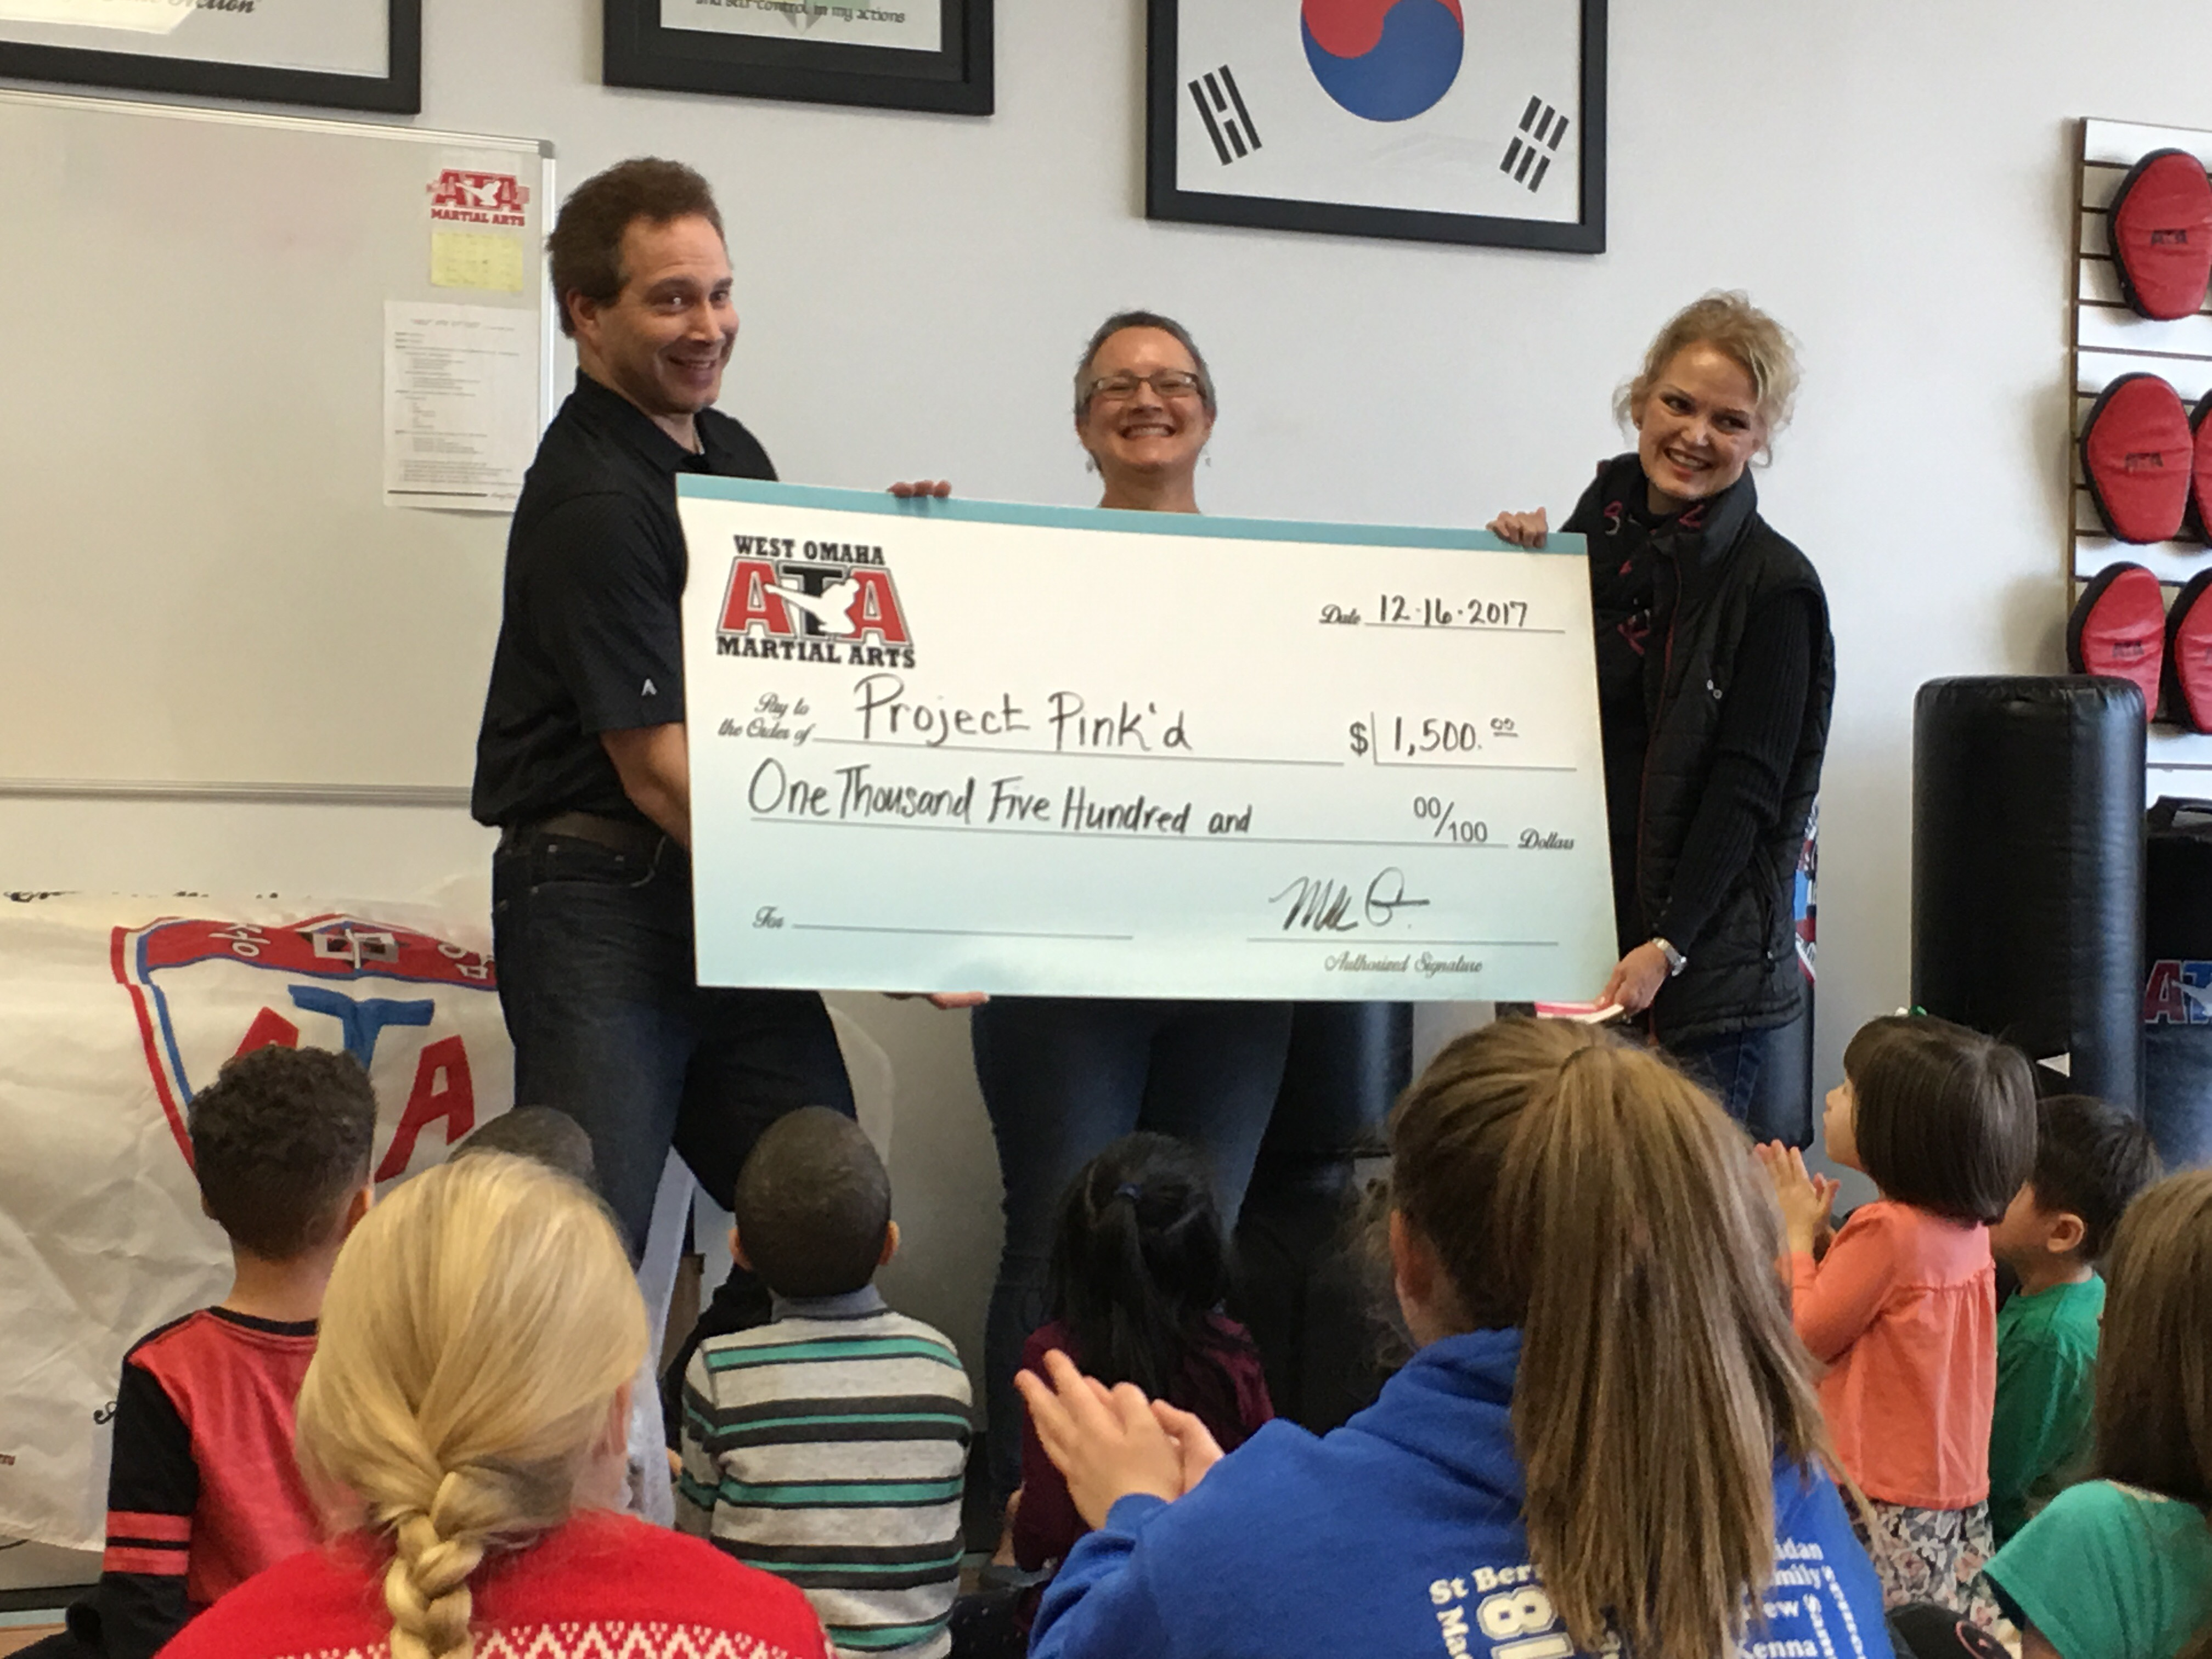 West Omaha Martial Arts Donates $1500 to Project Pink'd